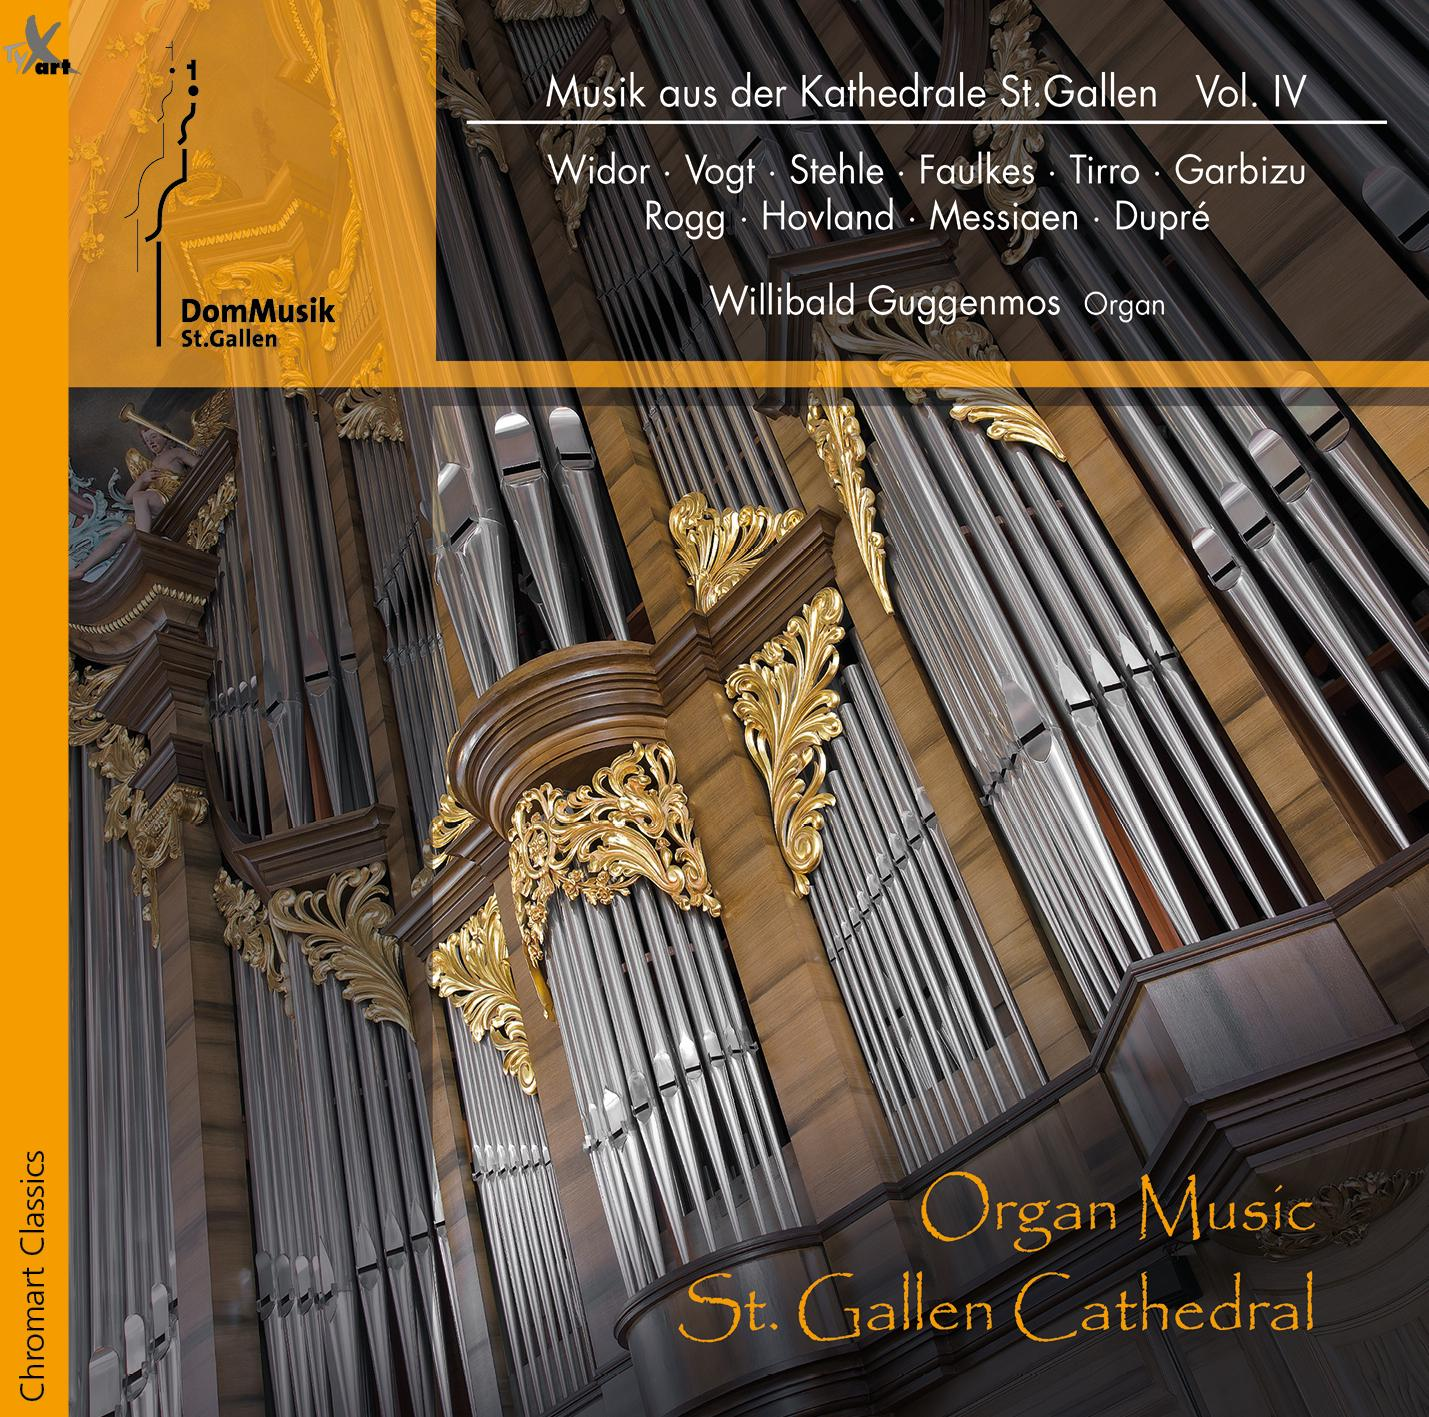 Organ Music - St. Gallen Cathedral - Willibald Guggenmos